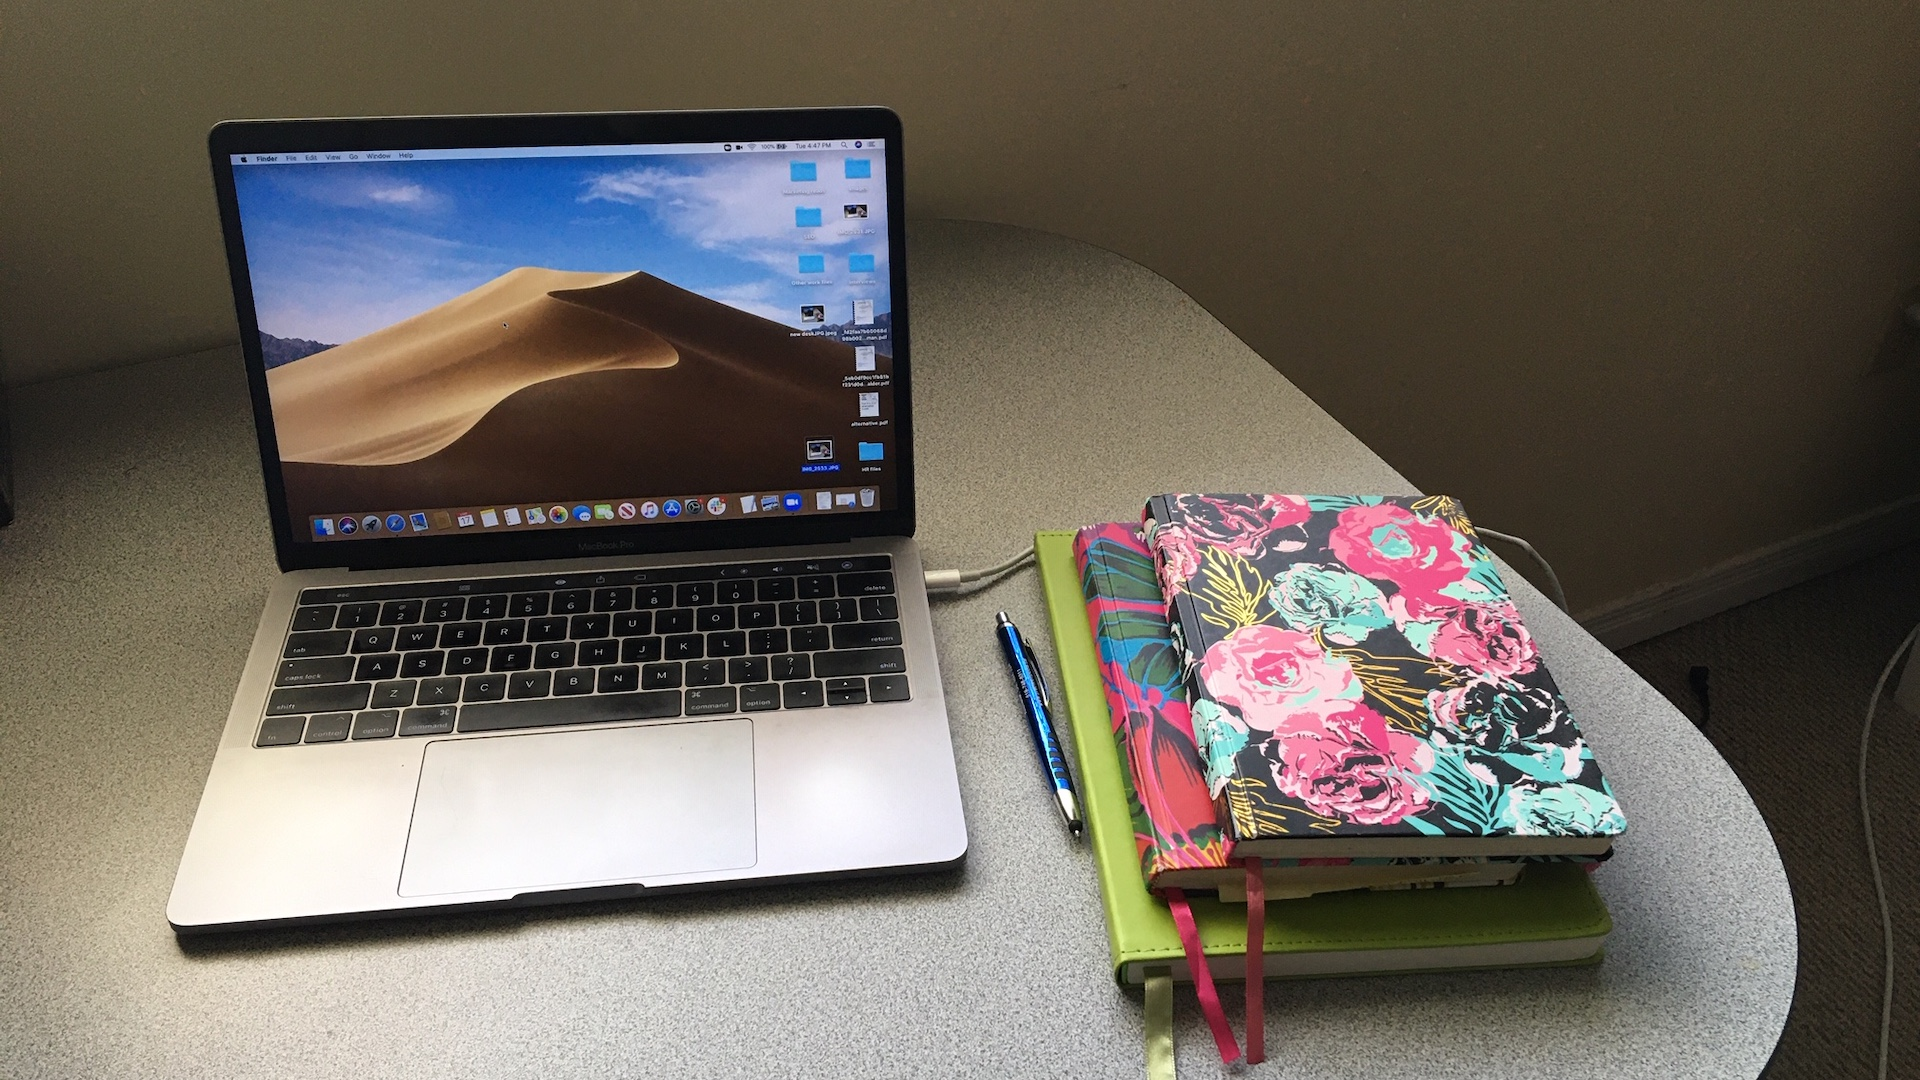 An open laptop on a grey desk with three notebooks stacked next to it.